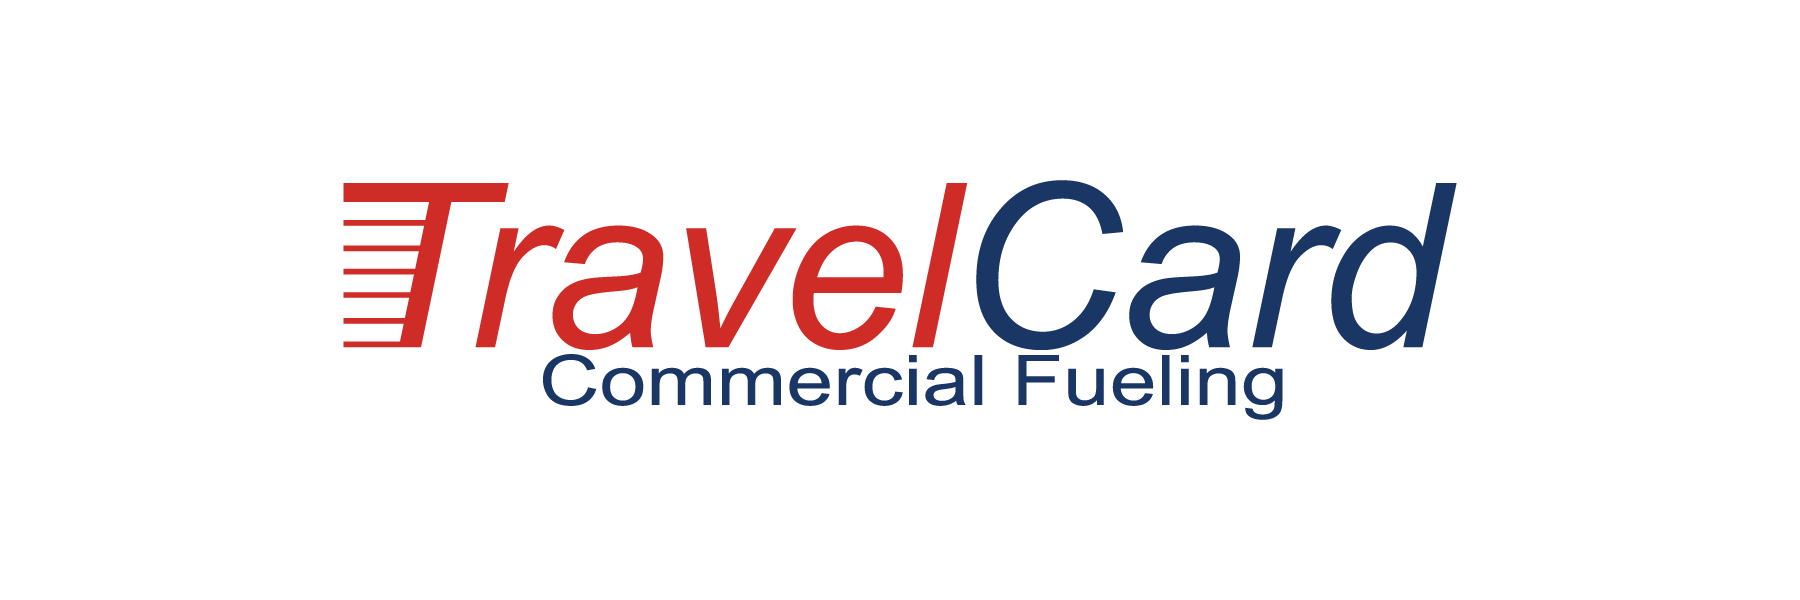 Travel Card Commercial Fueling